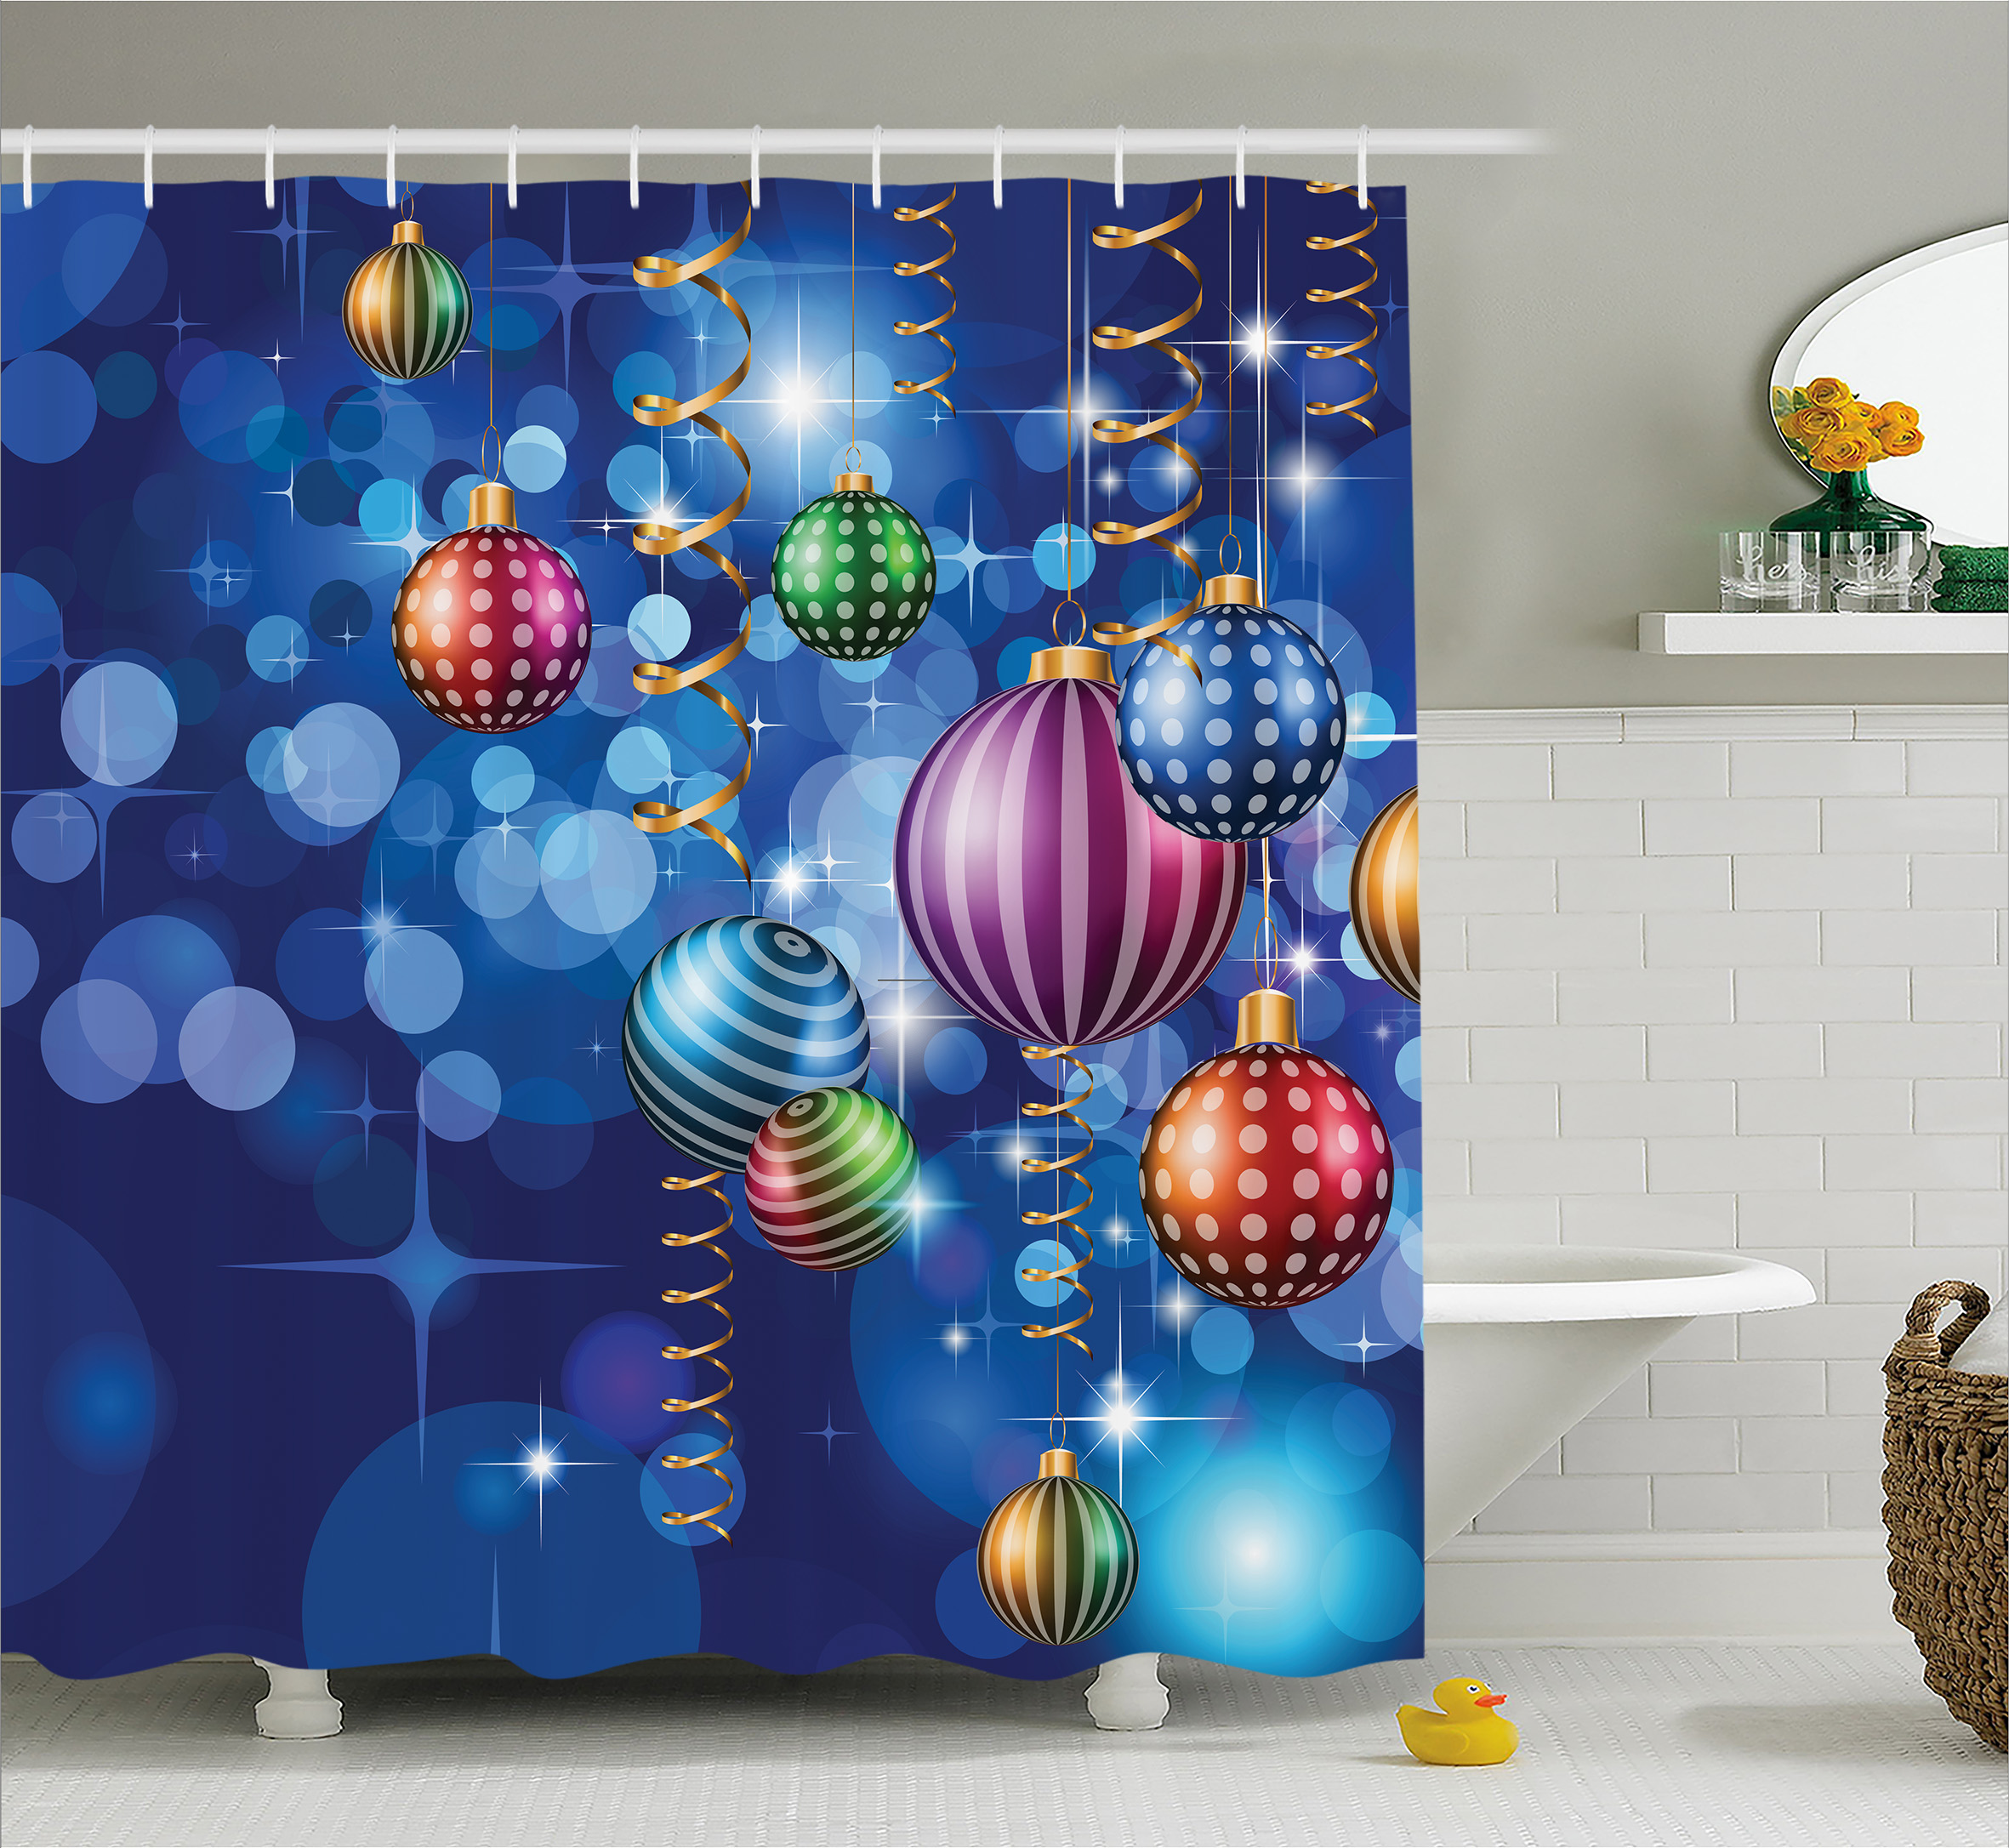 Christmas Shower Curtain Set Happy New Year Themed Party